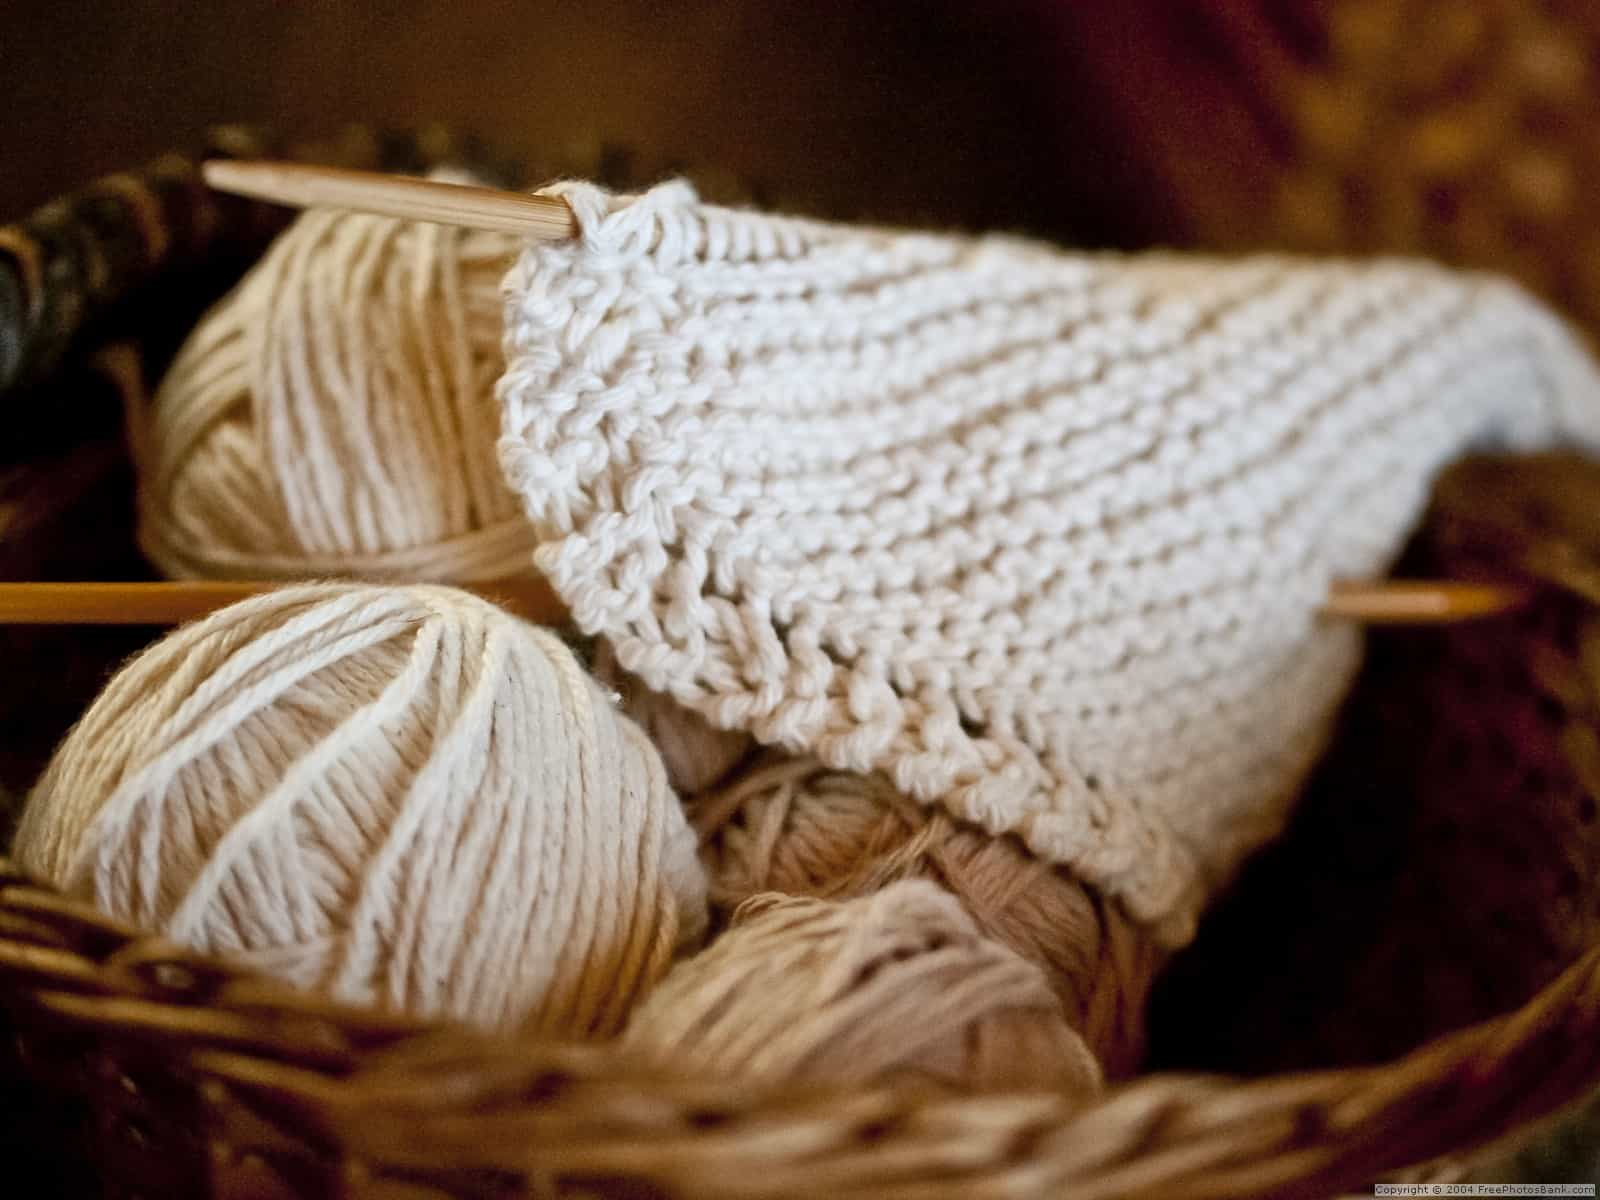 Knitting – hobbies for men